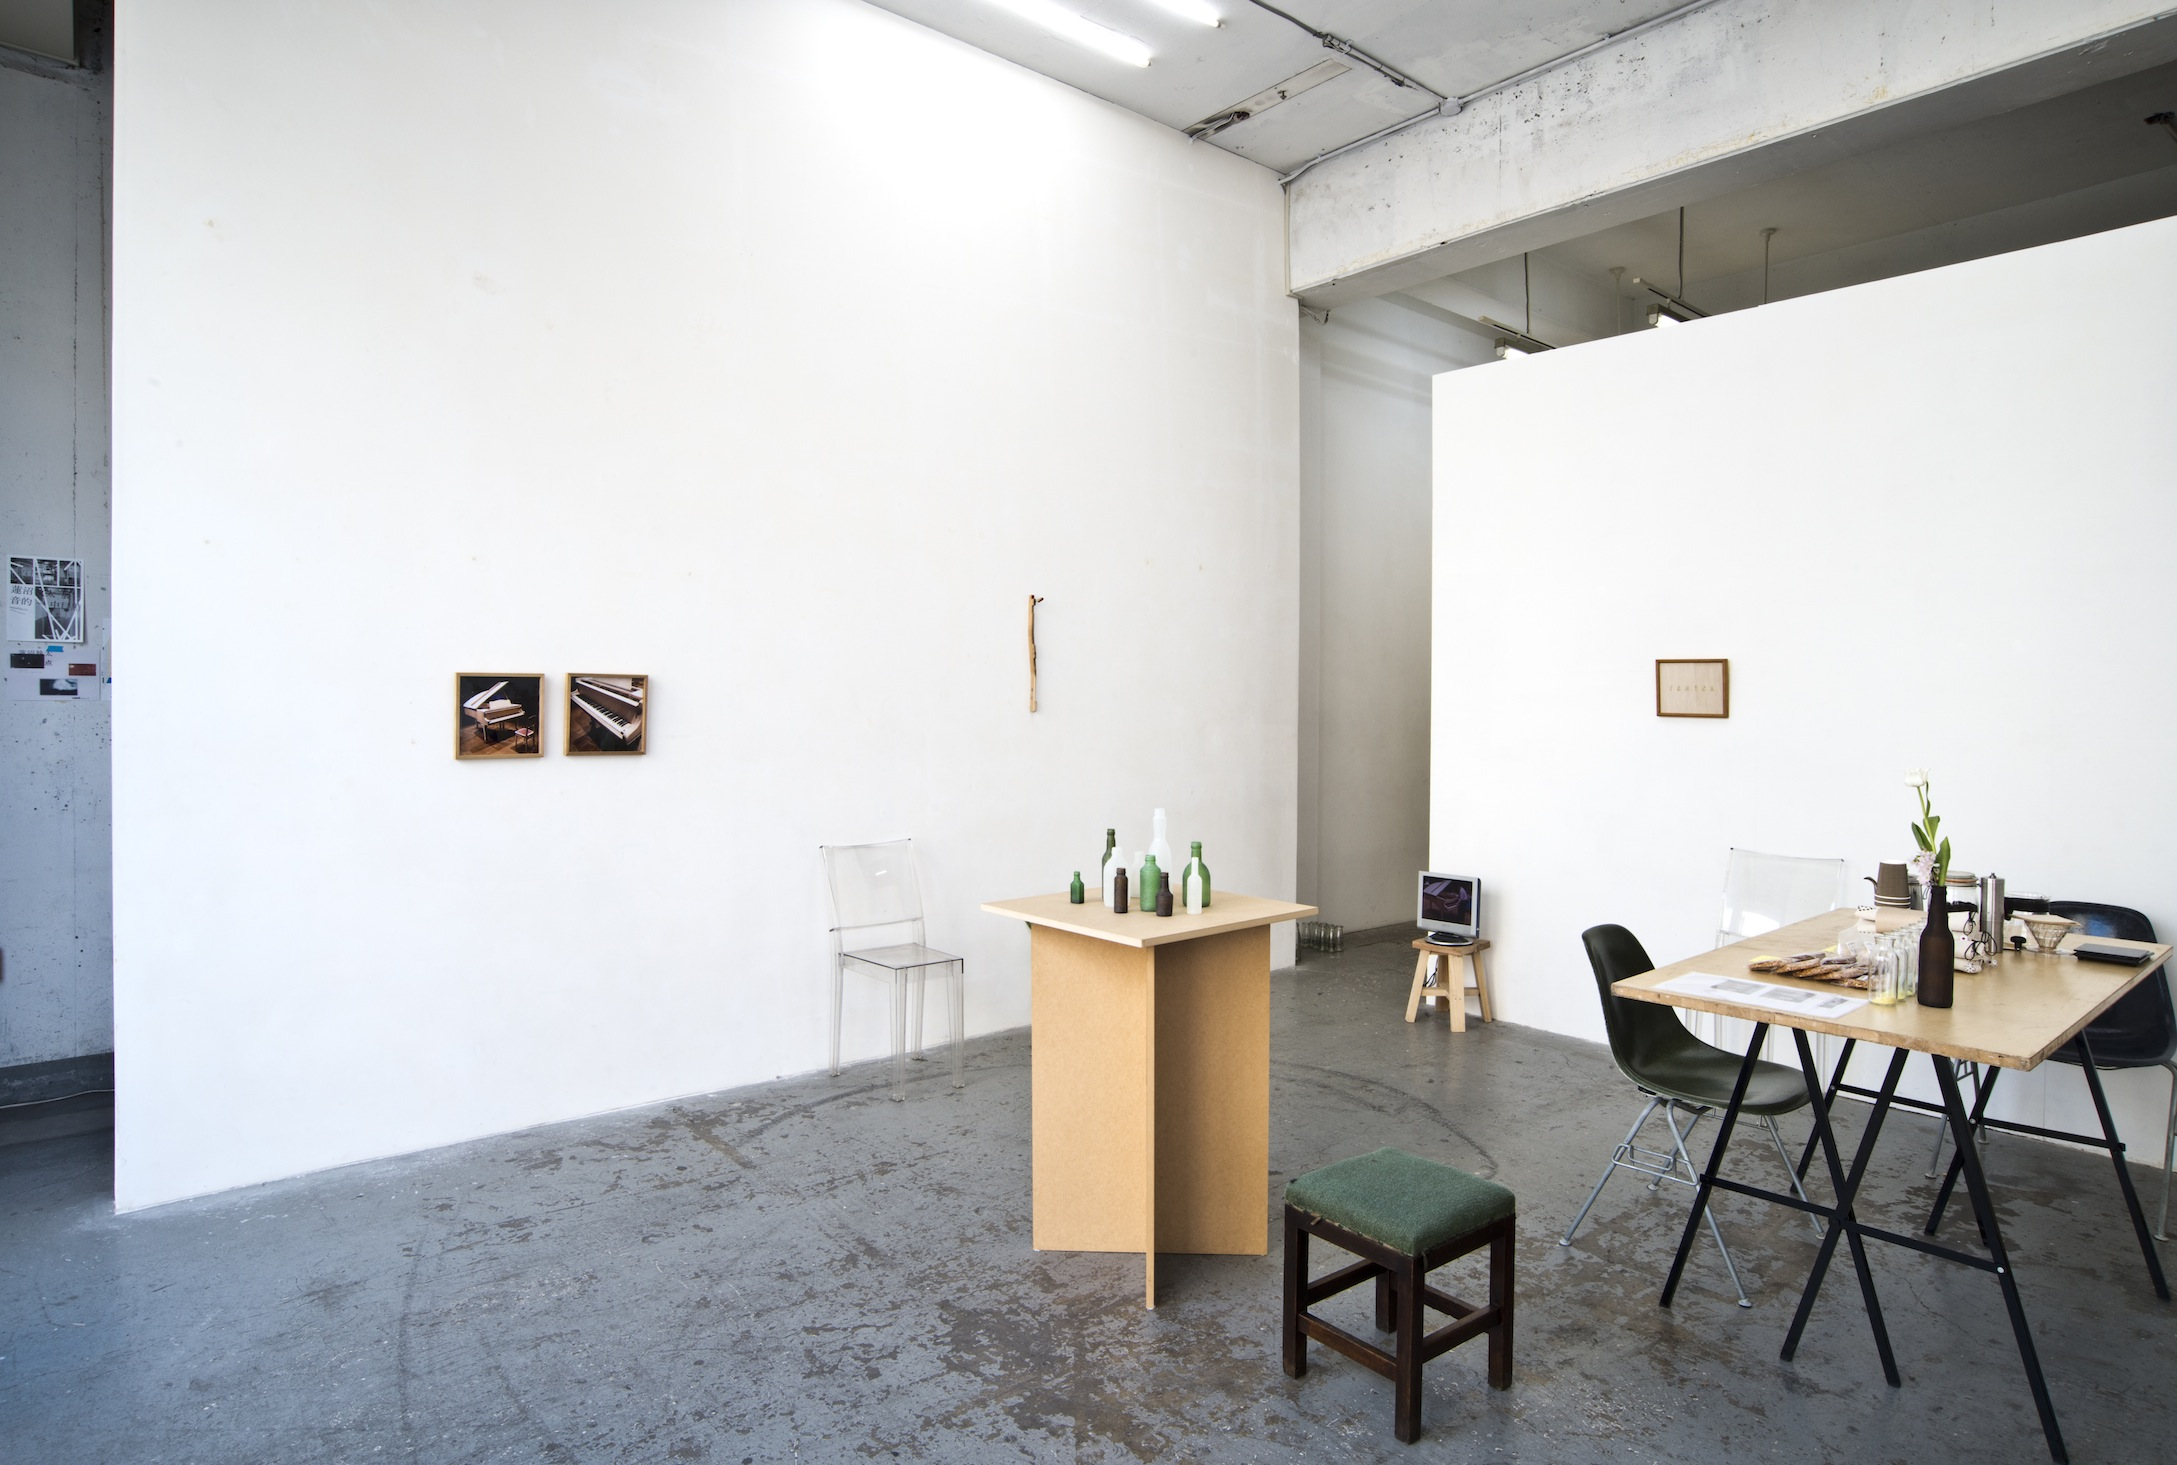 Installation view : 青田 真也 2014